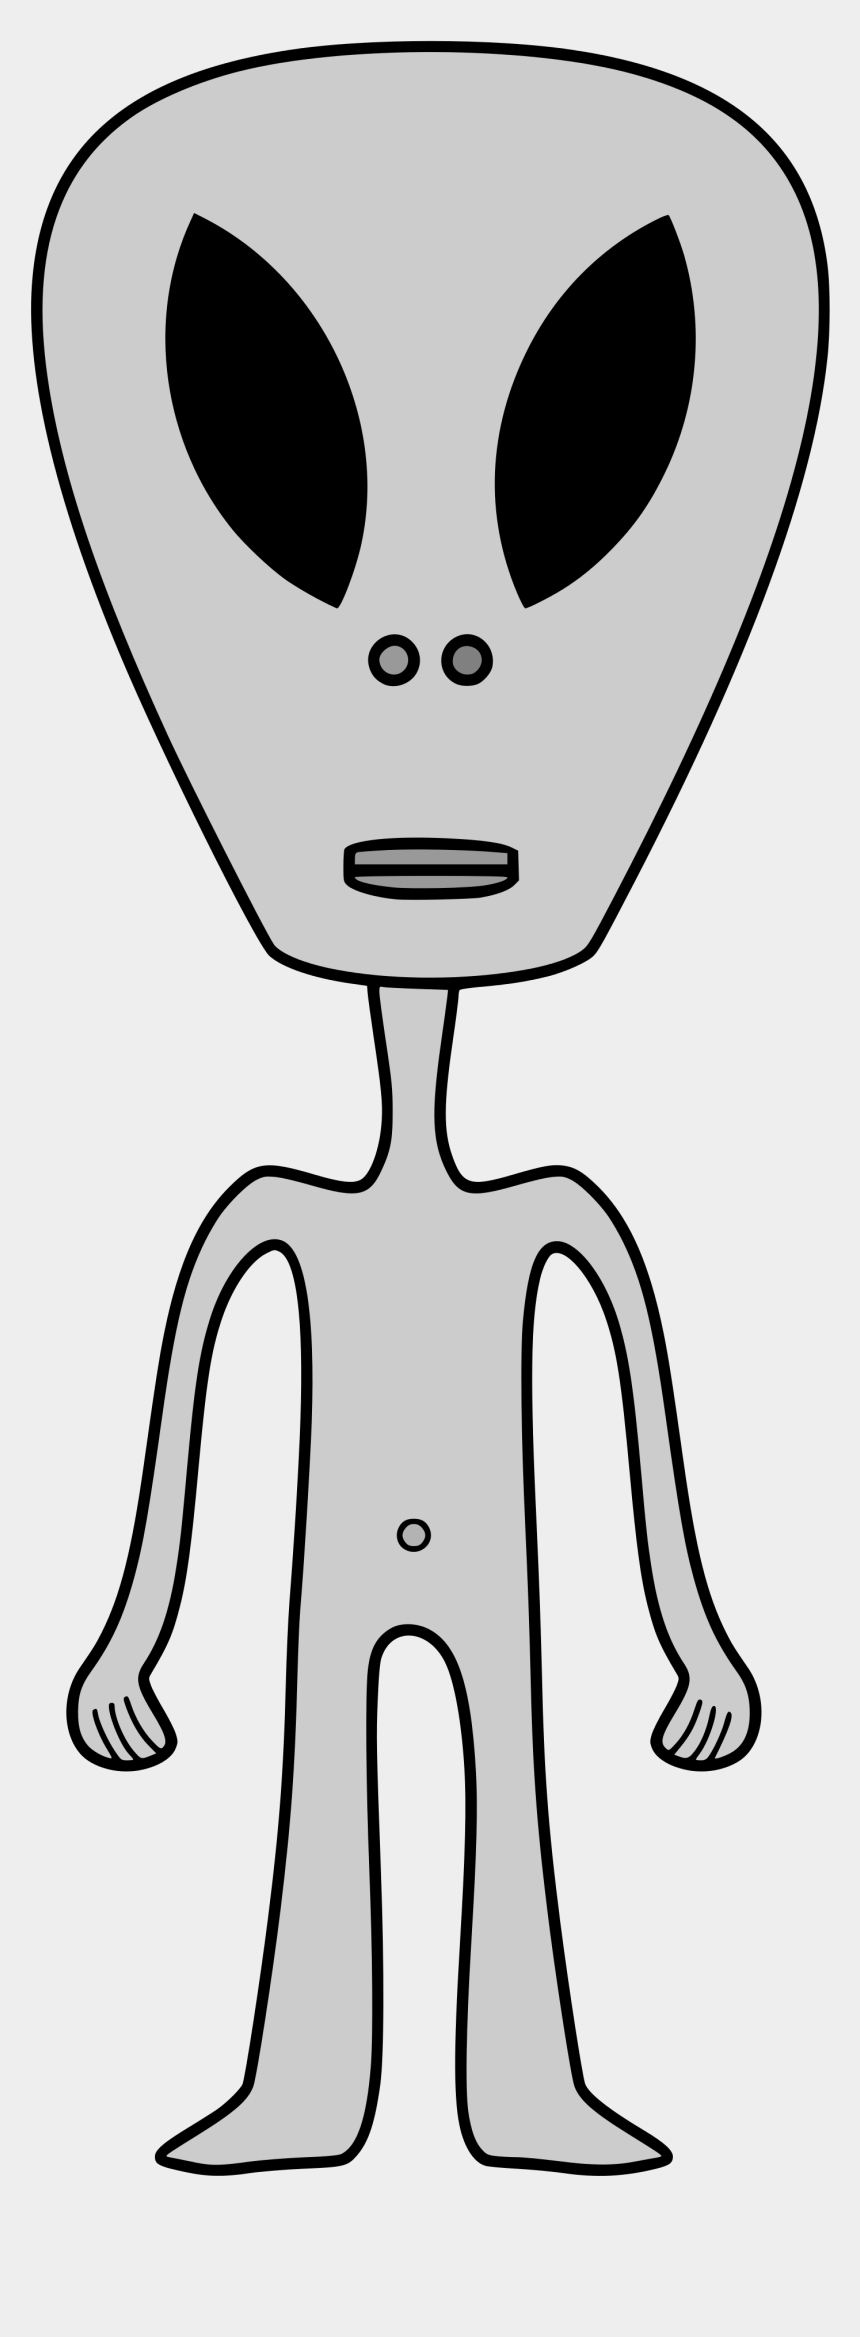 alien head clipart, Cartoons - Alien Svg Grey - People With Big Head And Skinny Body